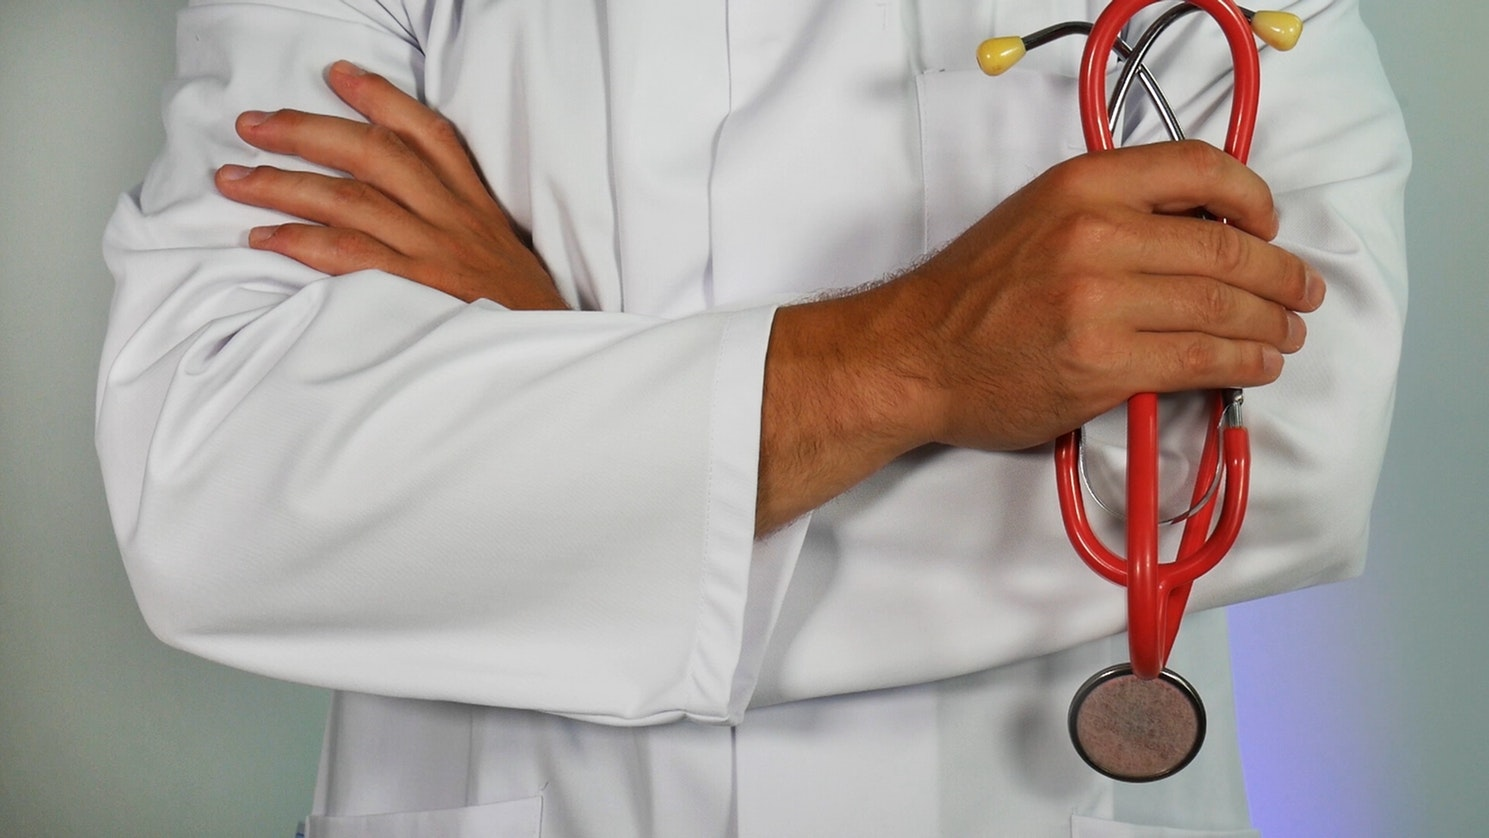 A doctor holding a stethoscope. Cancer is one of the 10 common senior health issues.